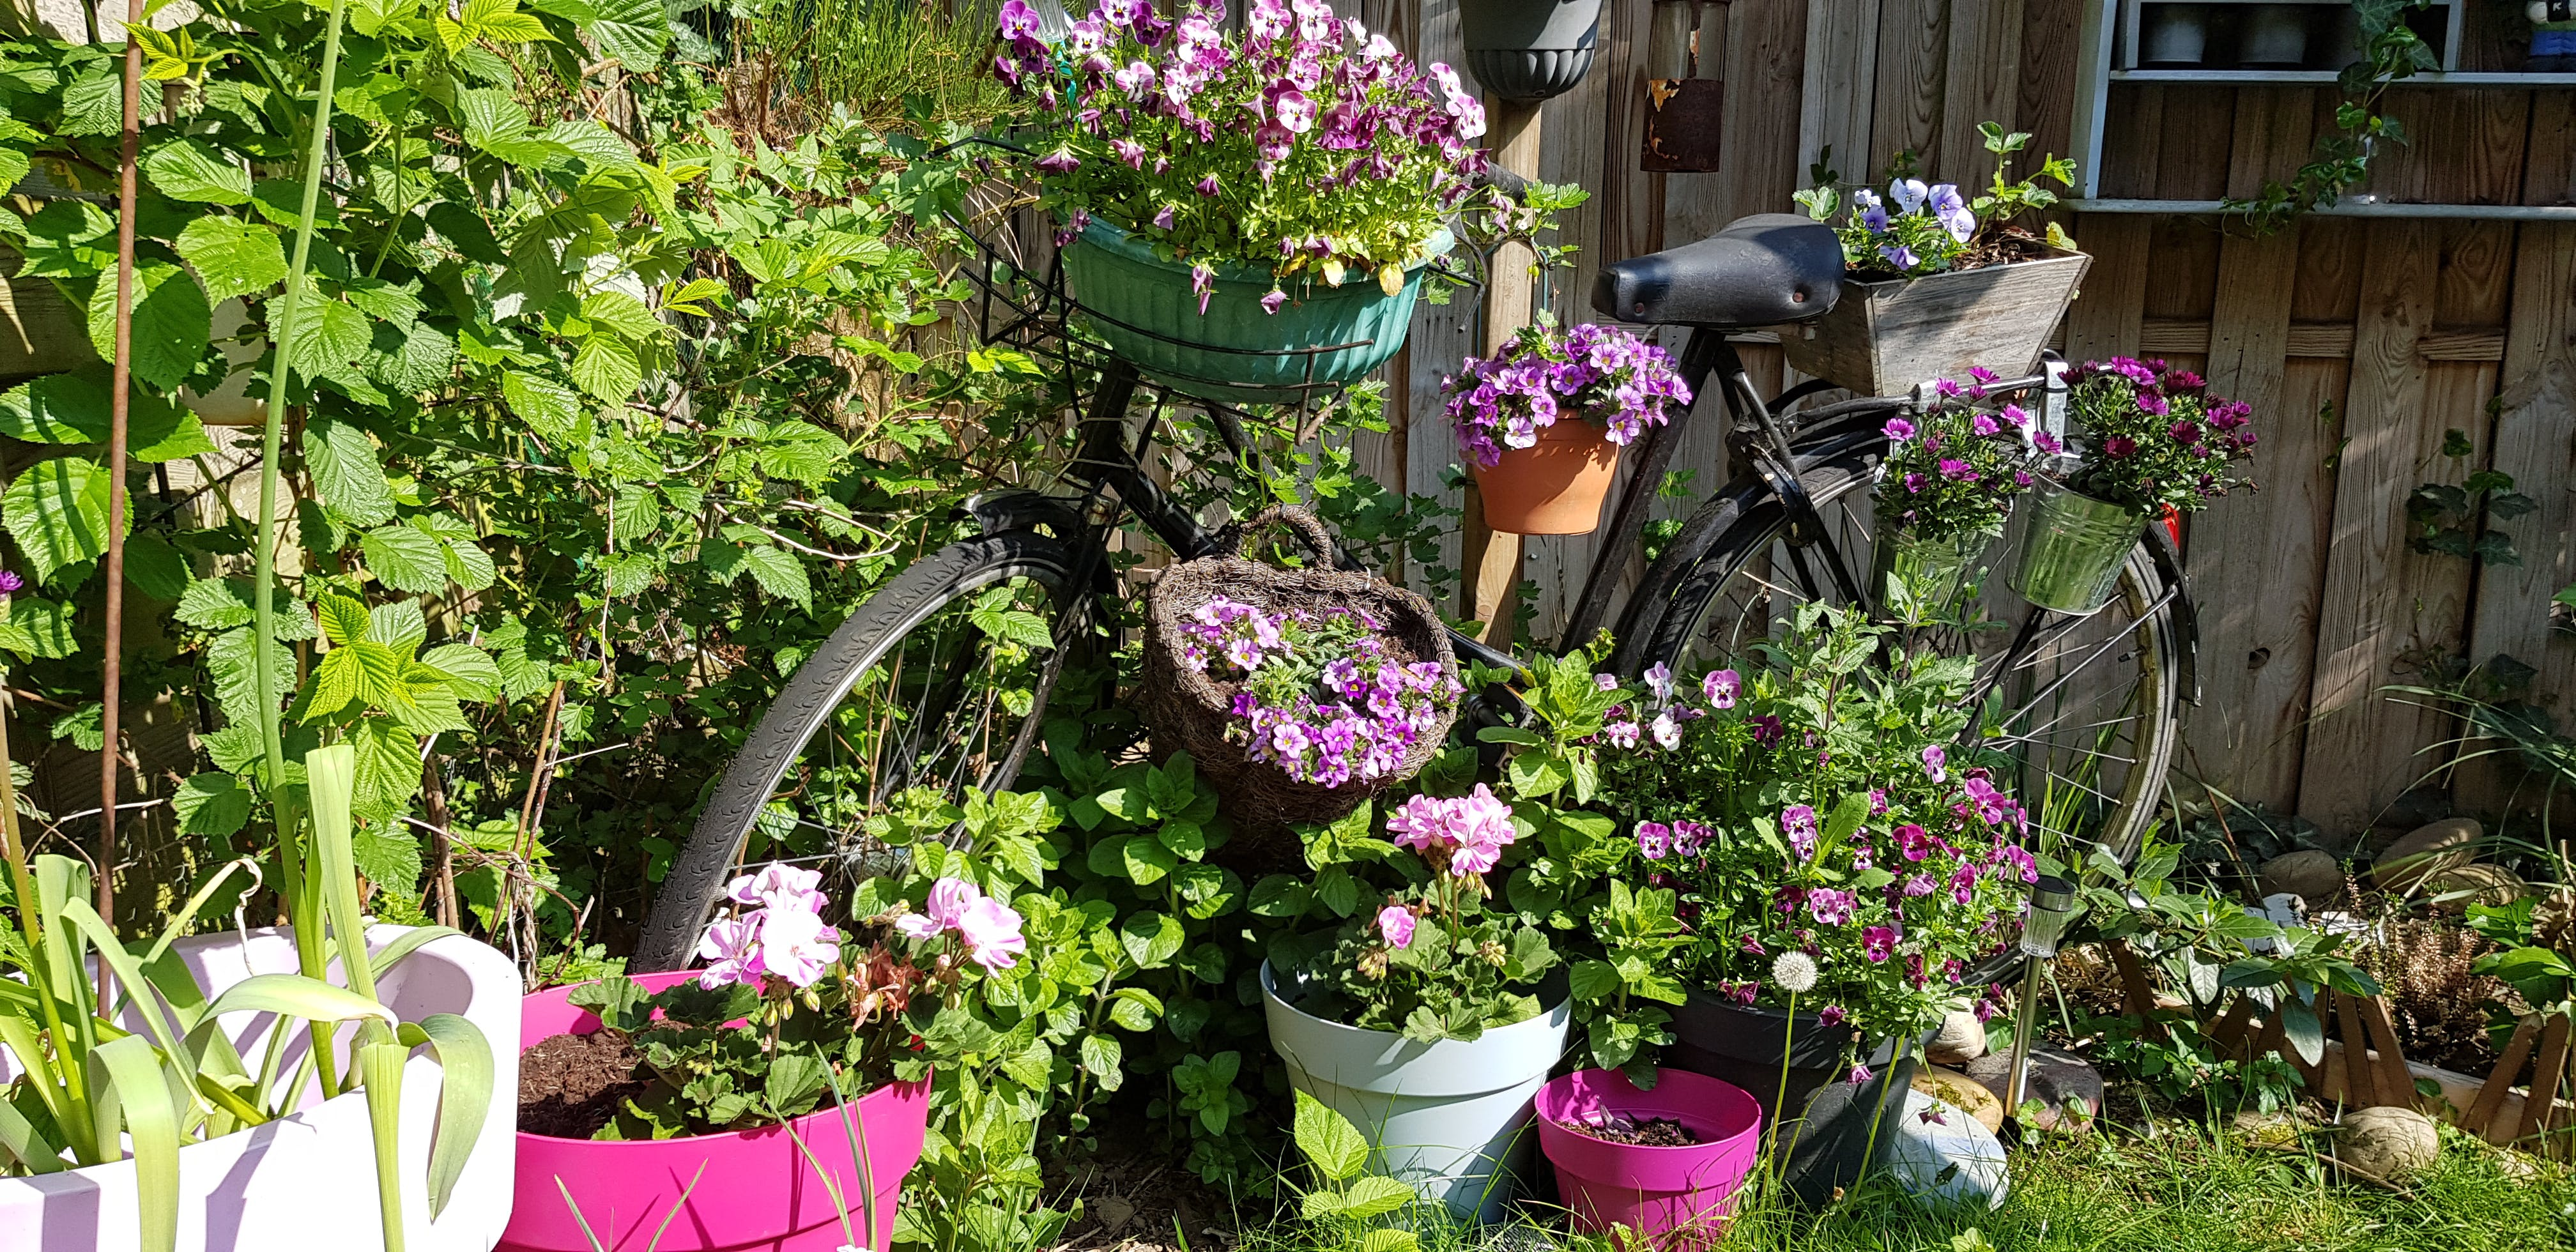 Free stock photo of bicycle, bike, flowers, garden feature